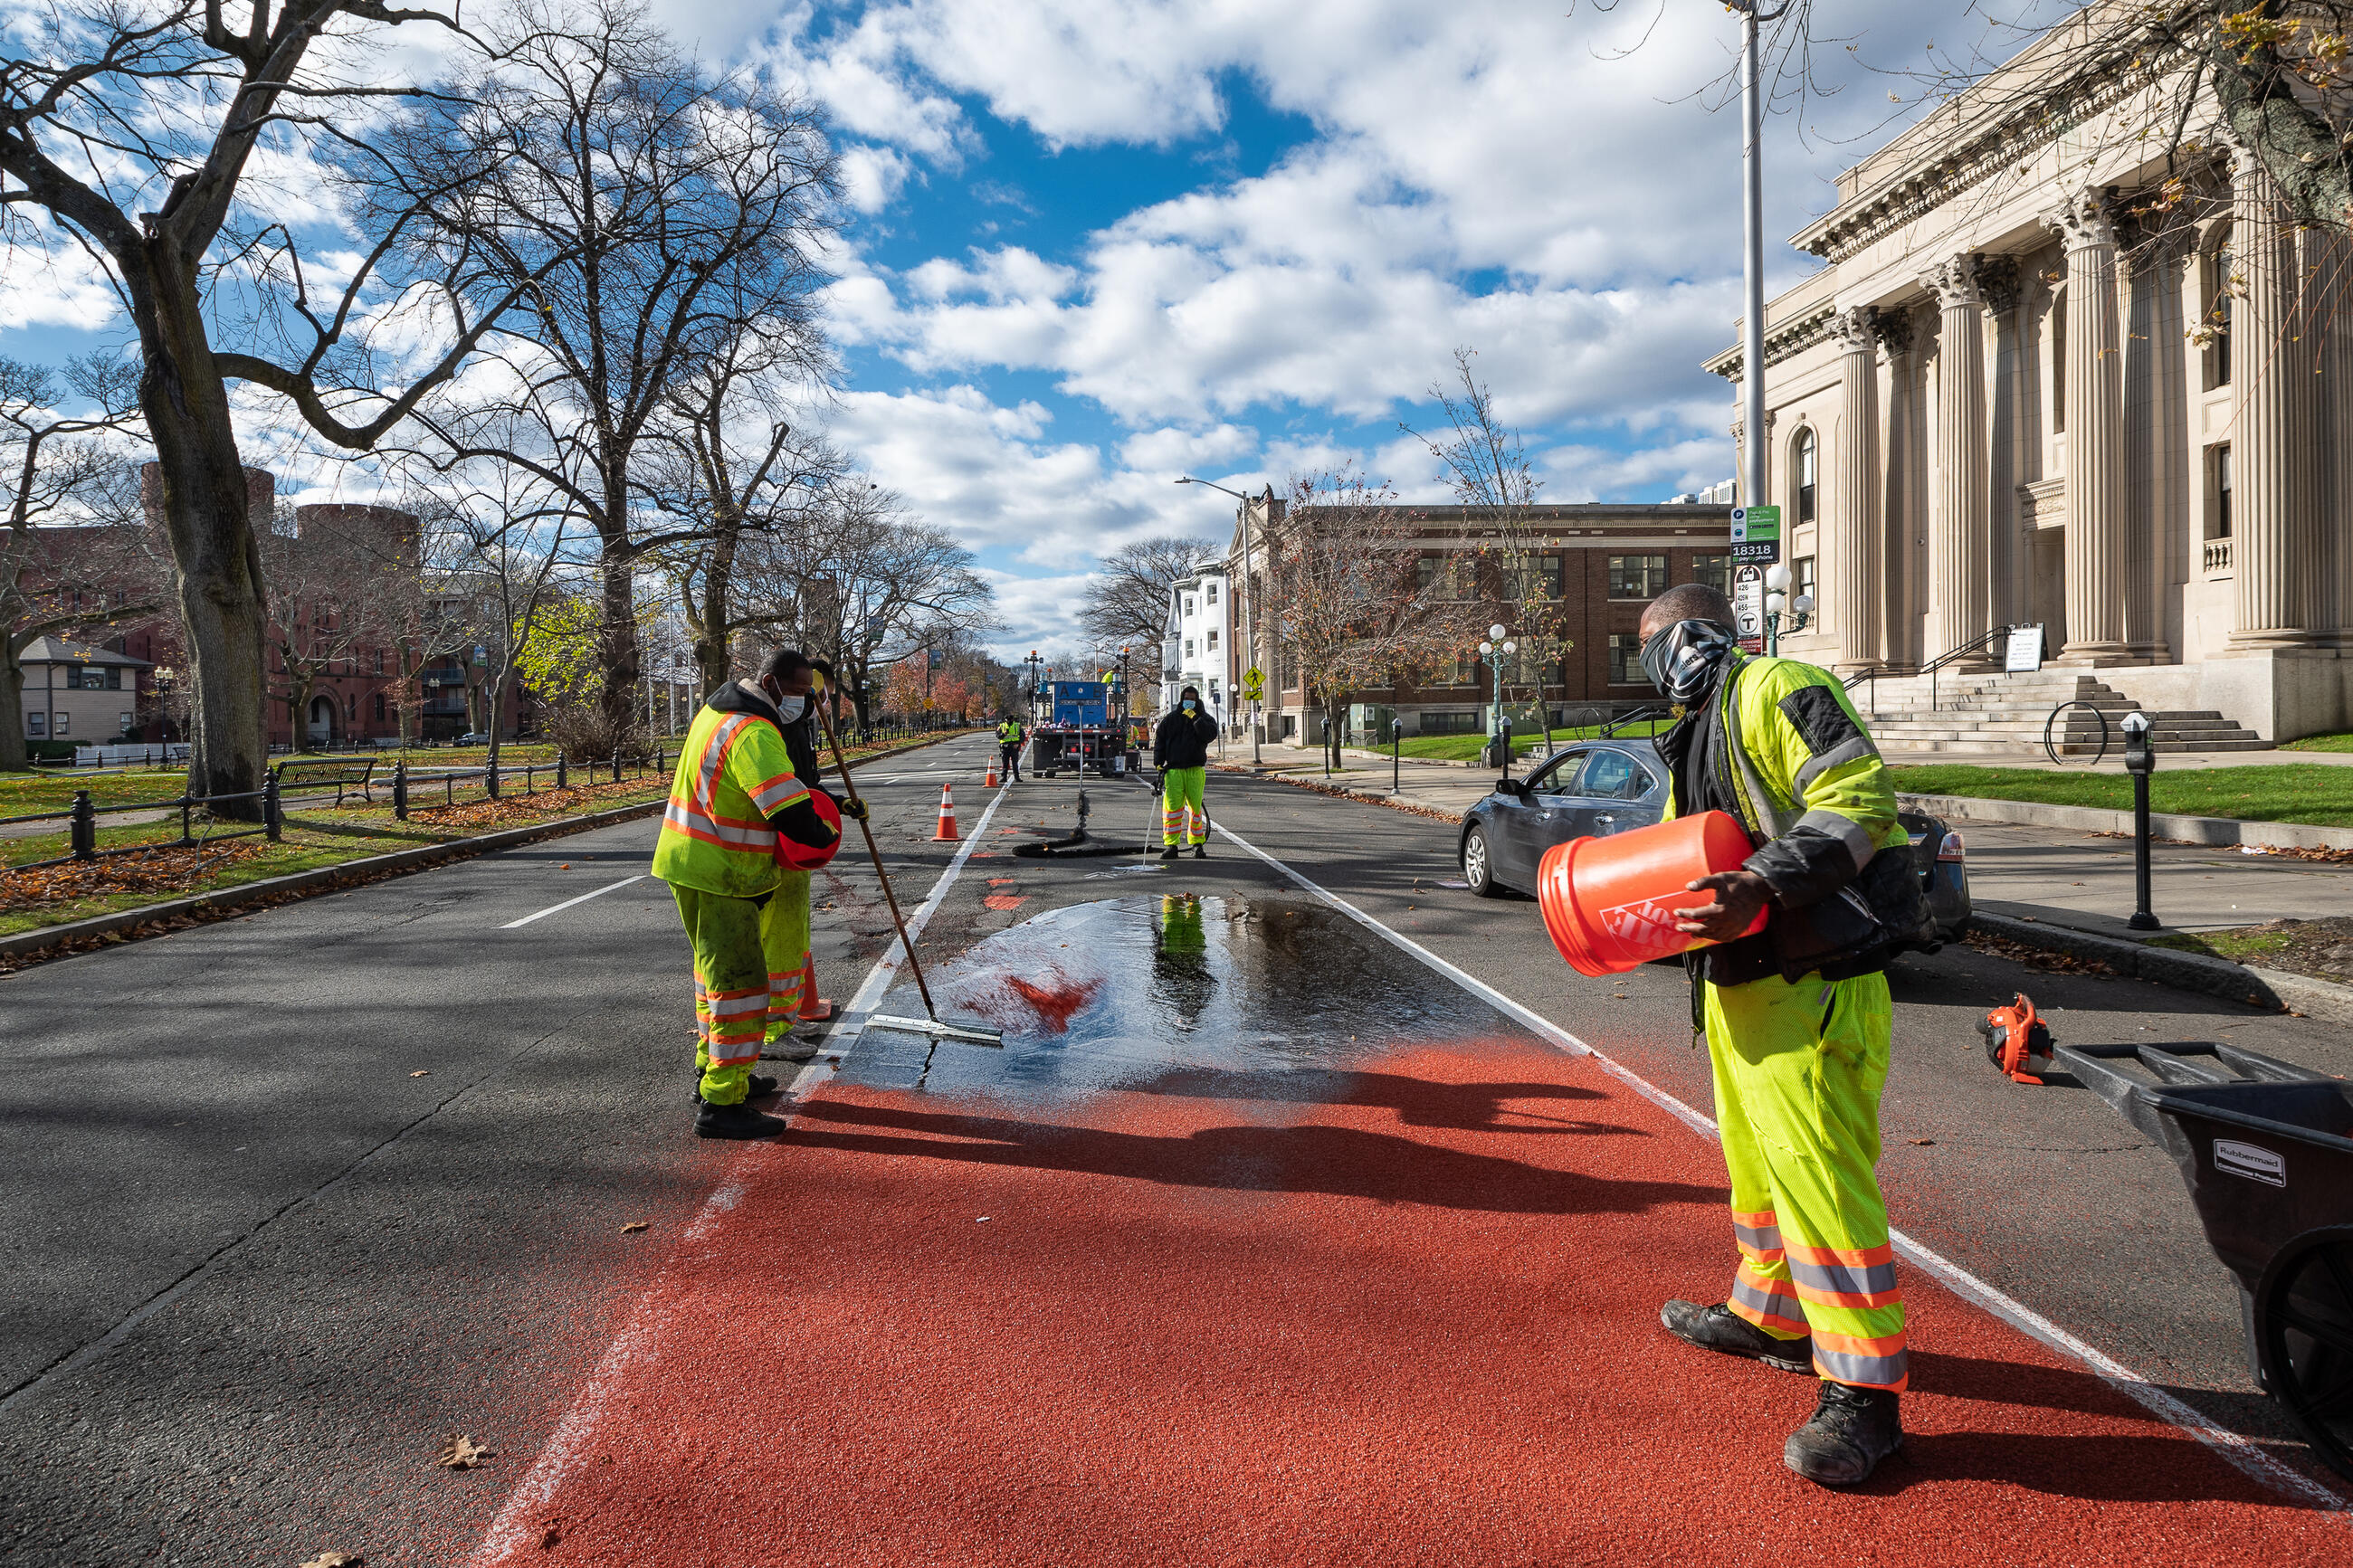 Construction crews installing a segment of the bus lane on North Common Street near the Lynn Public Library in November 2020.